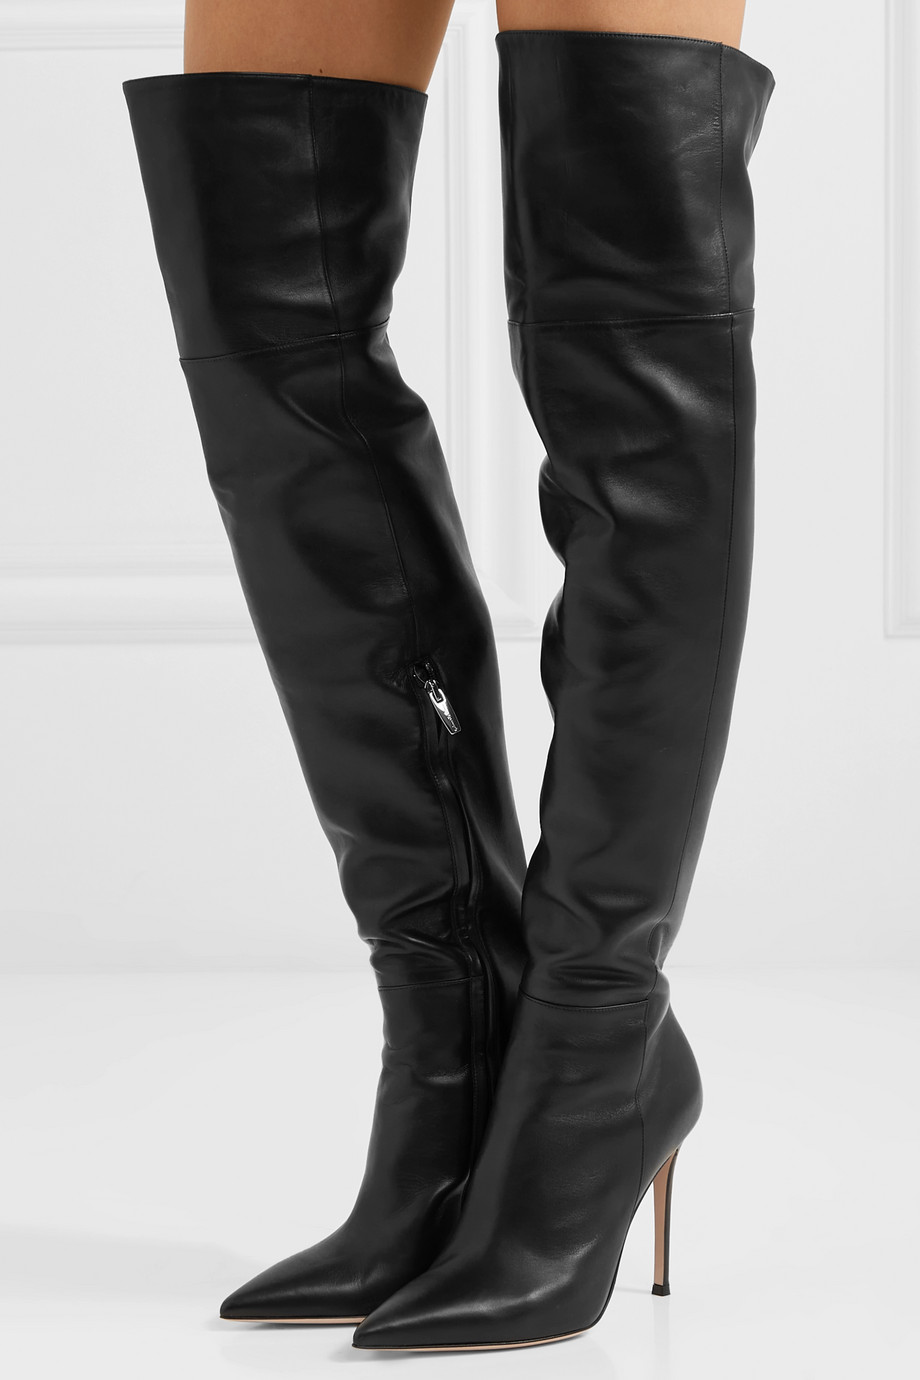 Gianvito Rossi 105 leather over-the-knee boots